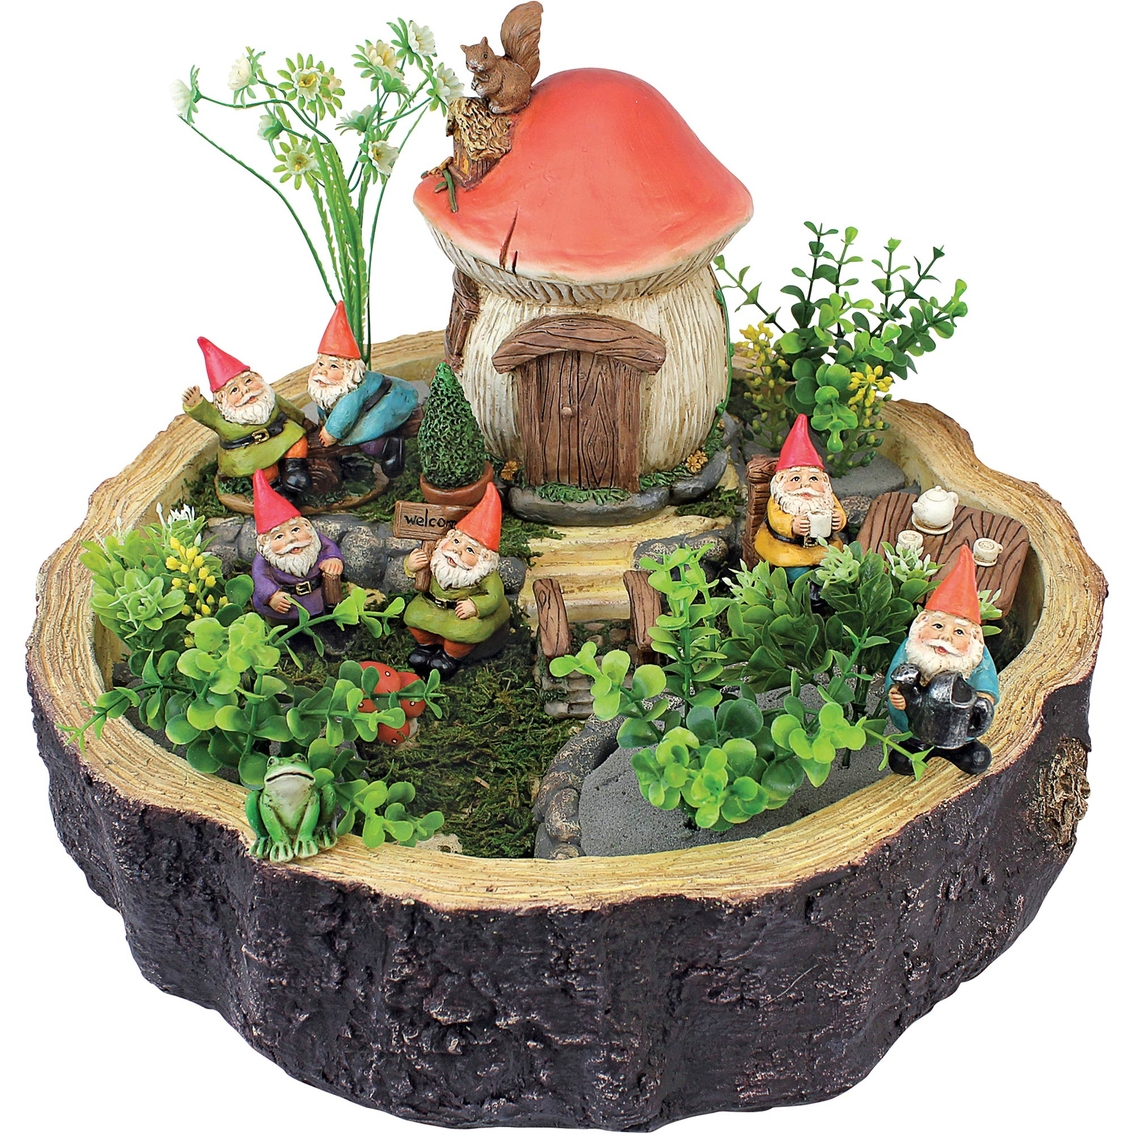 Design Toscano Tiny Forest Friends Gnome Garden Statue Collection